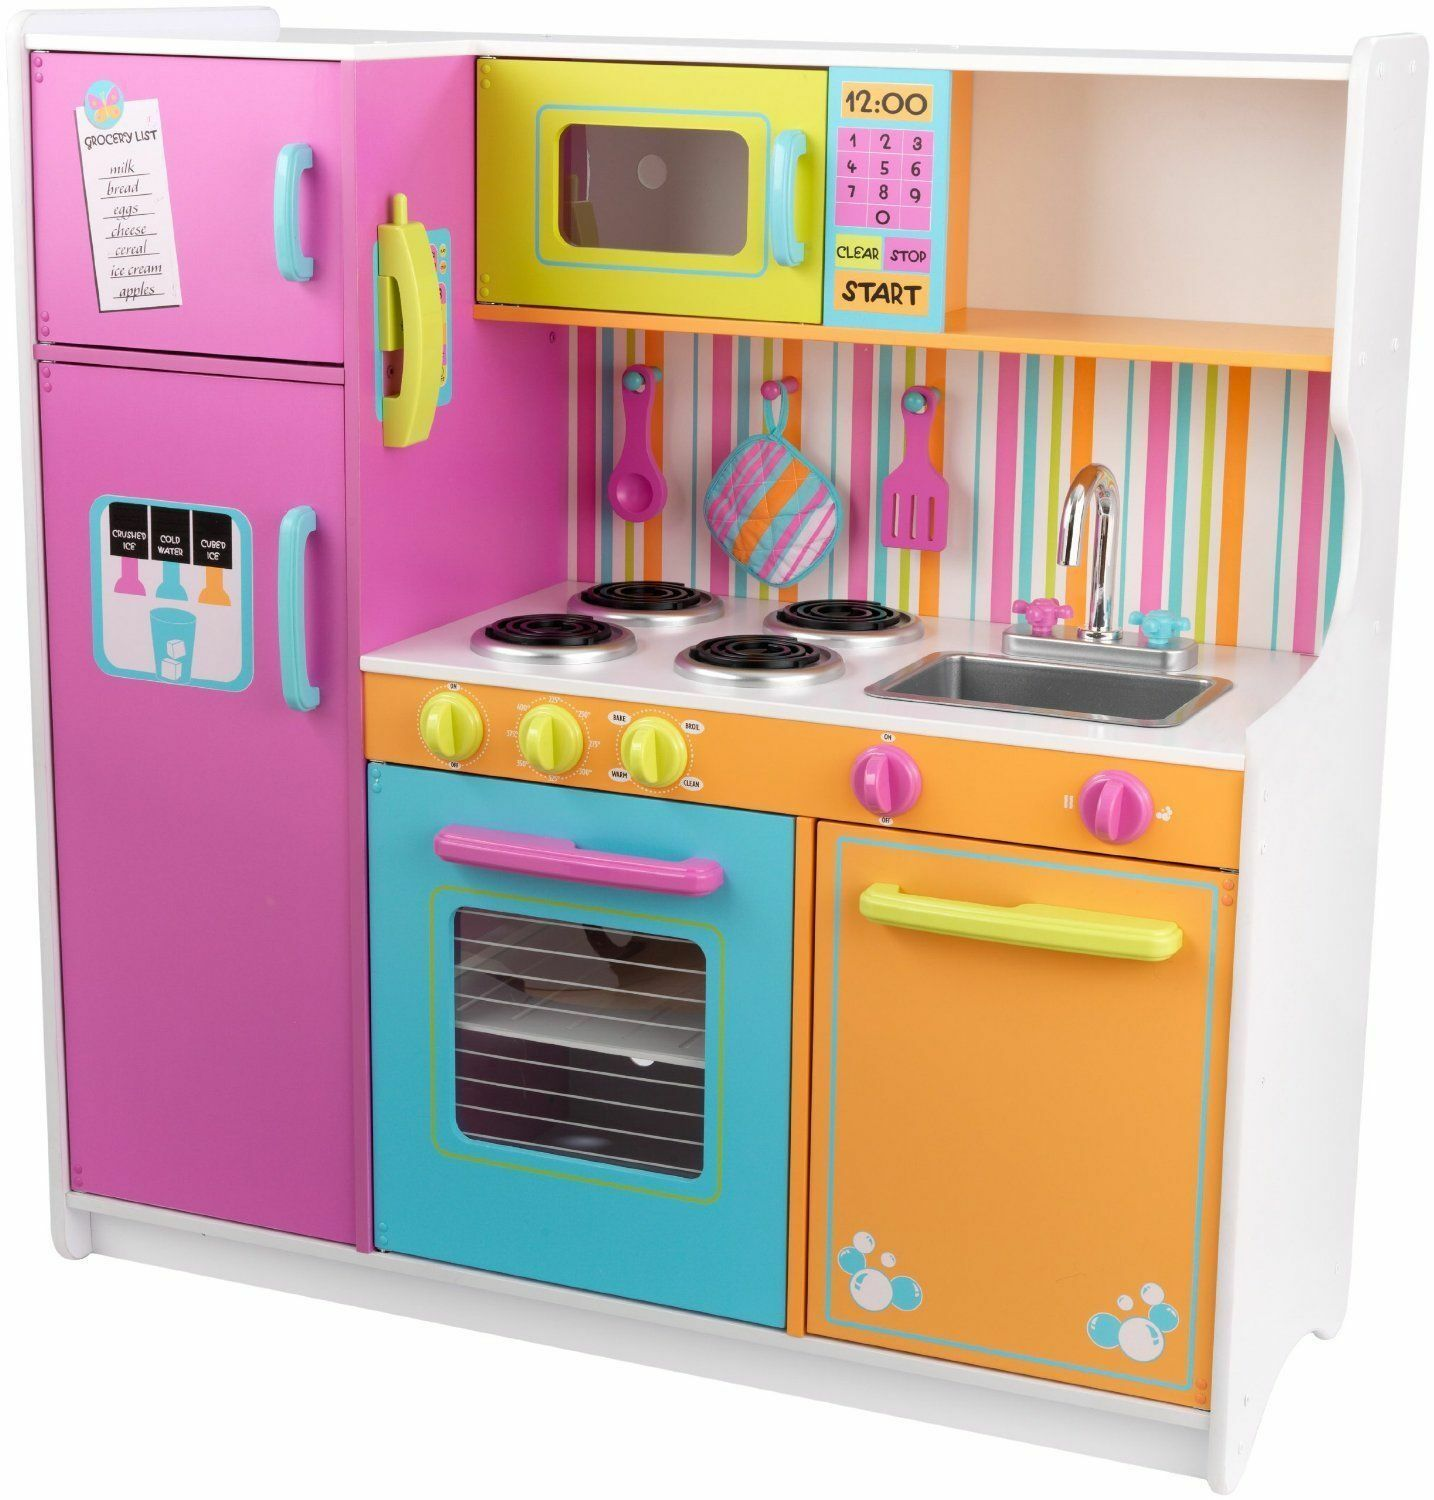 Kidkraft Wooden Play Kitchen top 10 wooden kitchens for kids | ebay